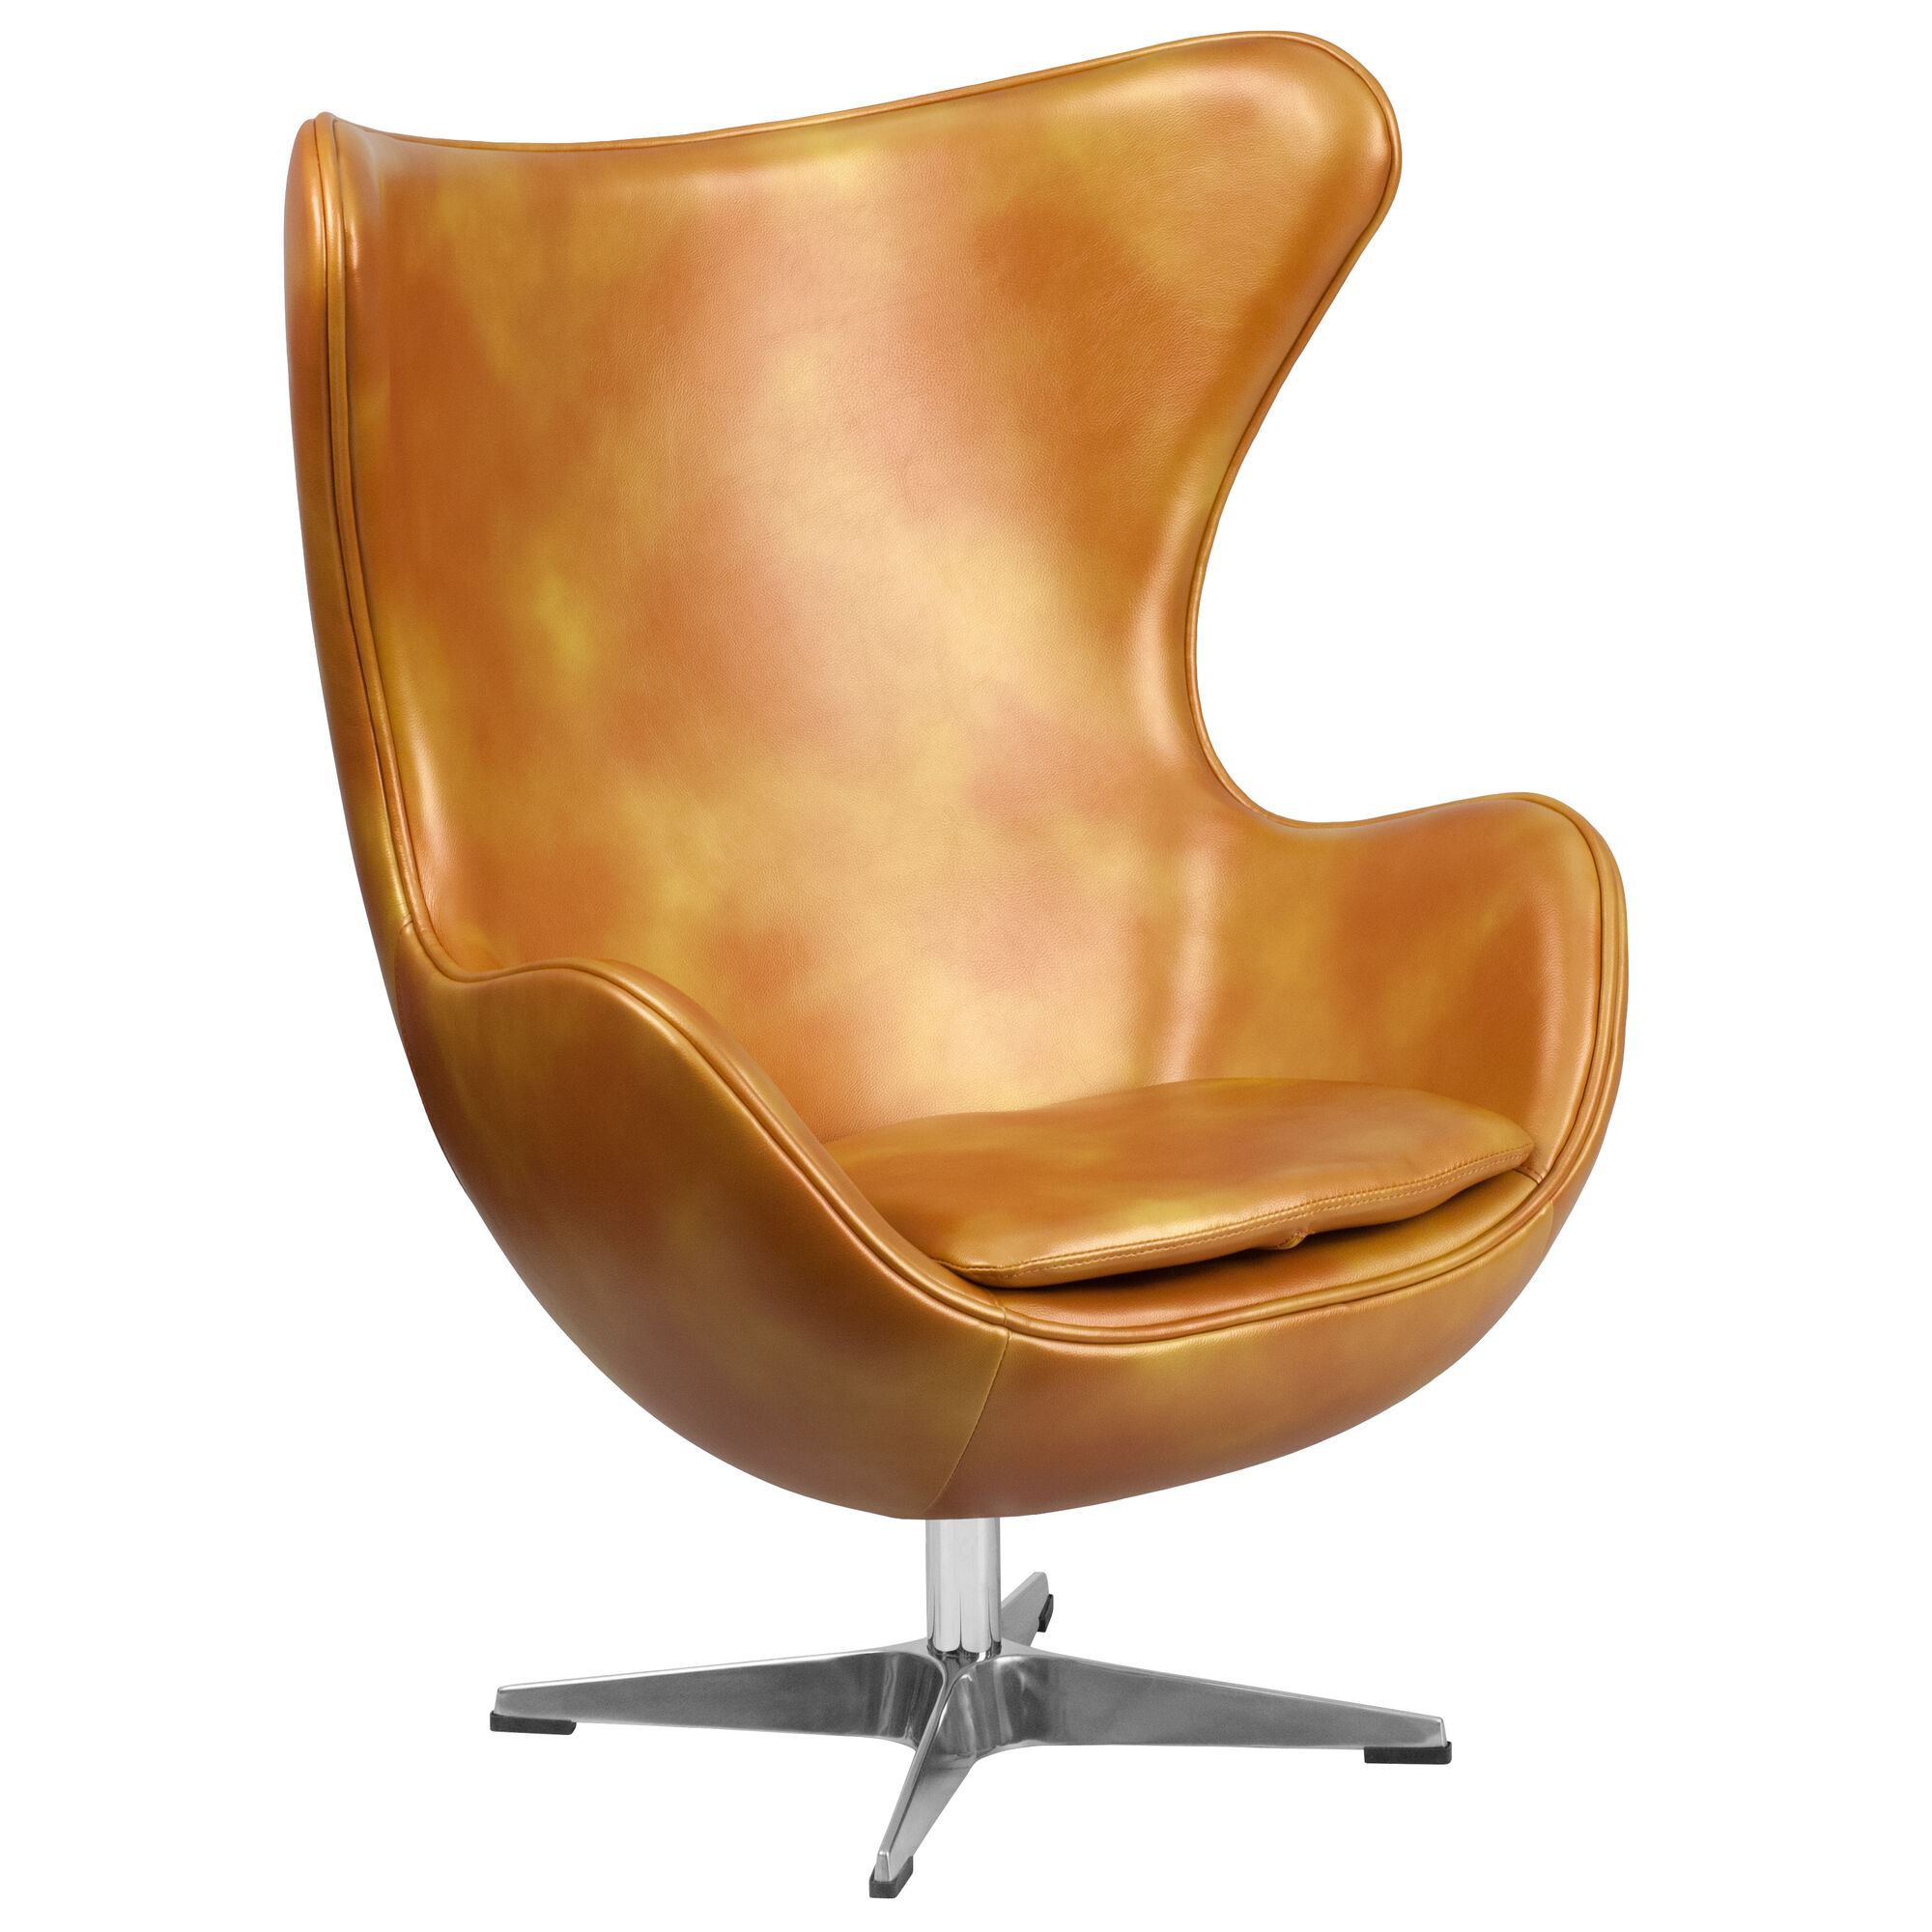 The Egg Chair.Gold Leather Egg Chair With Tilt Lock Mechanism